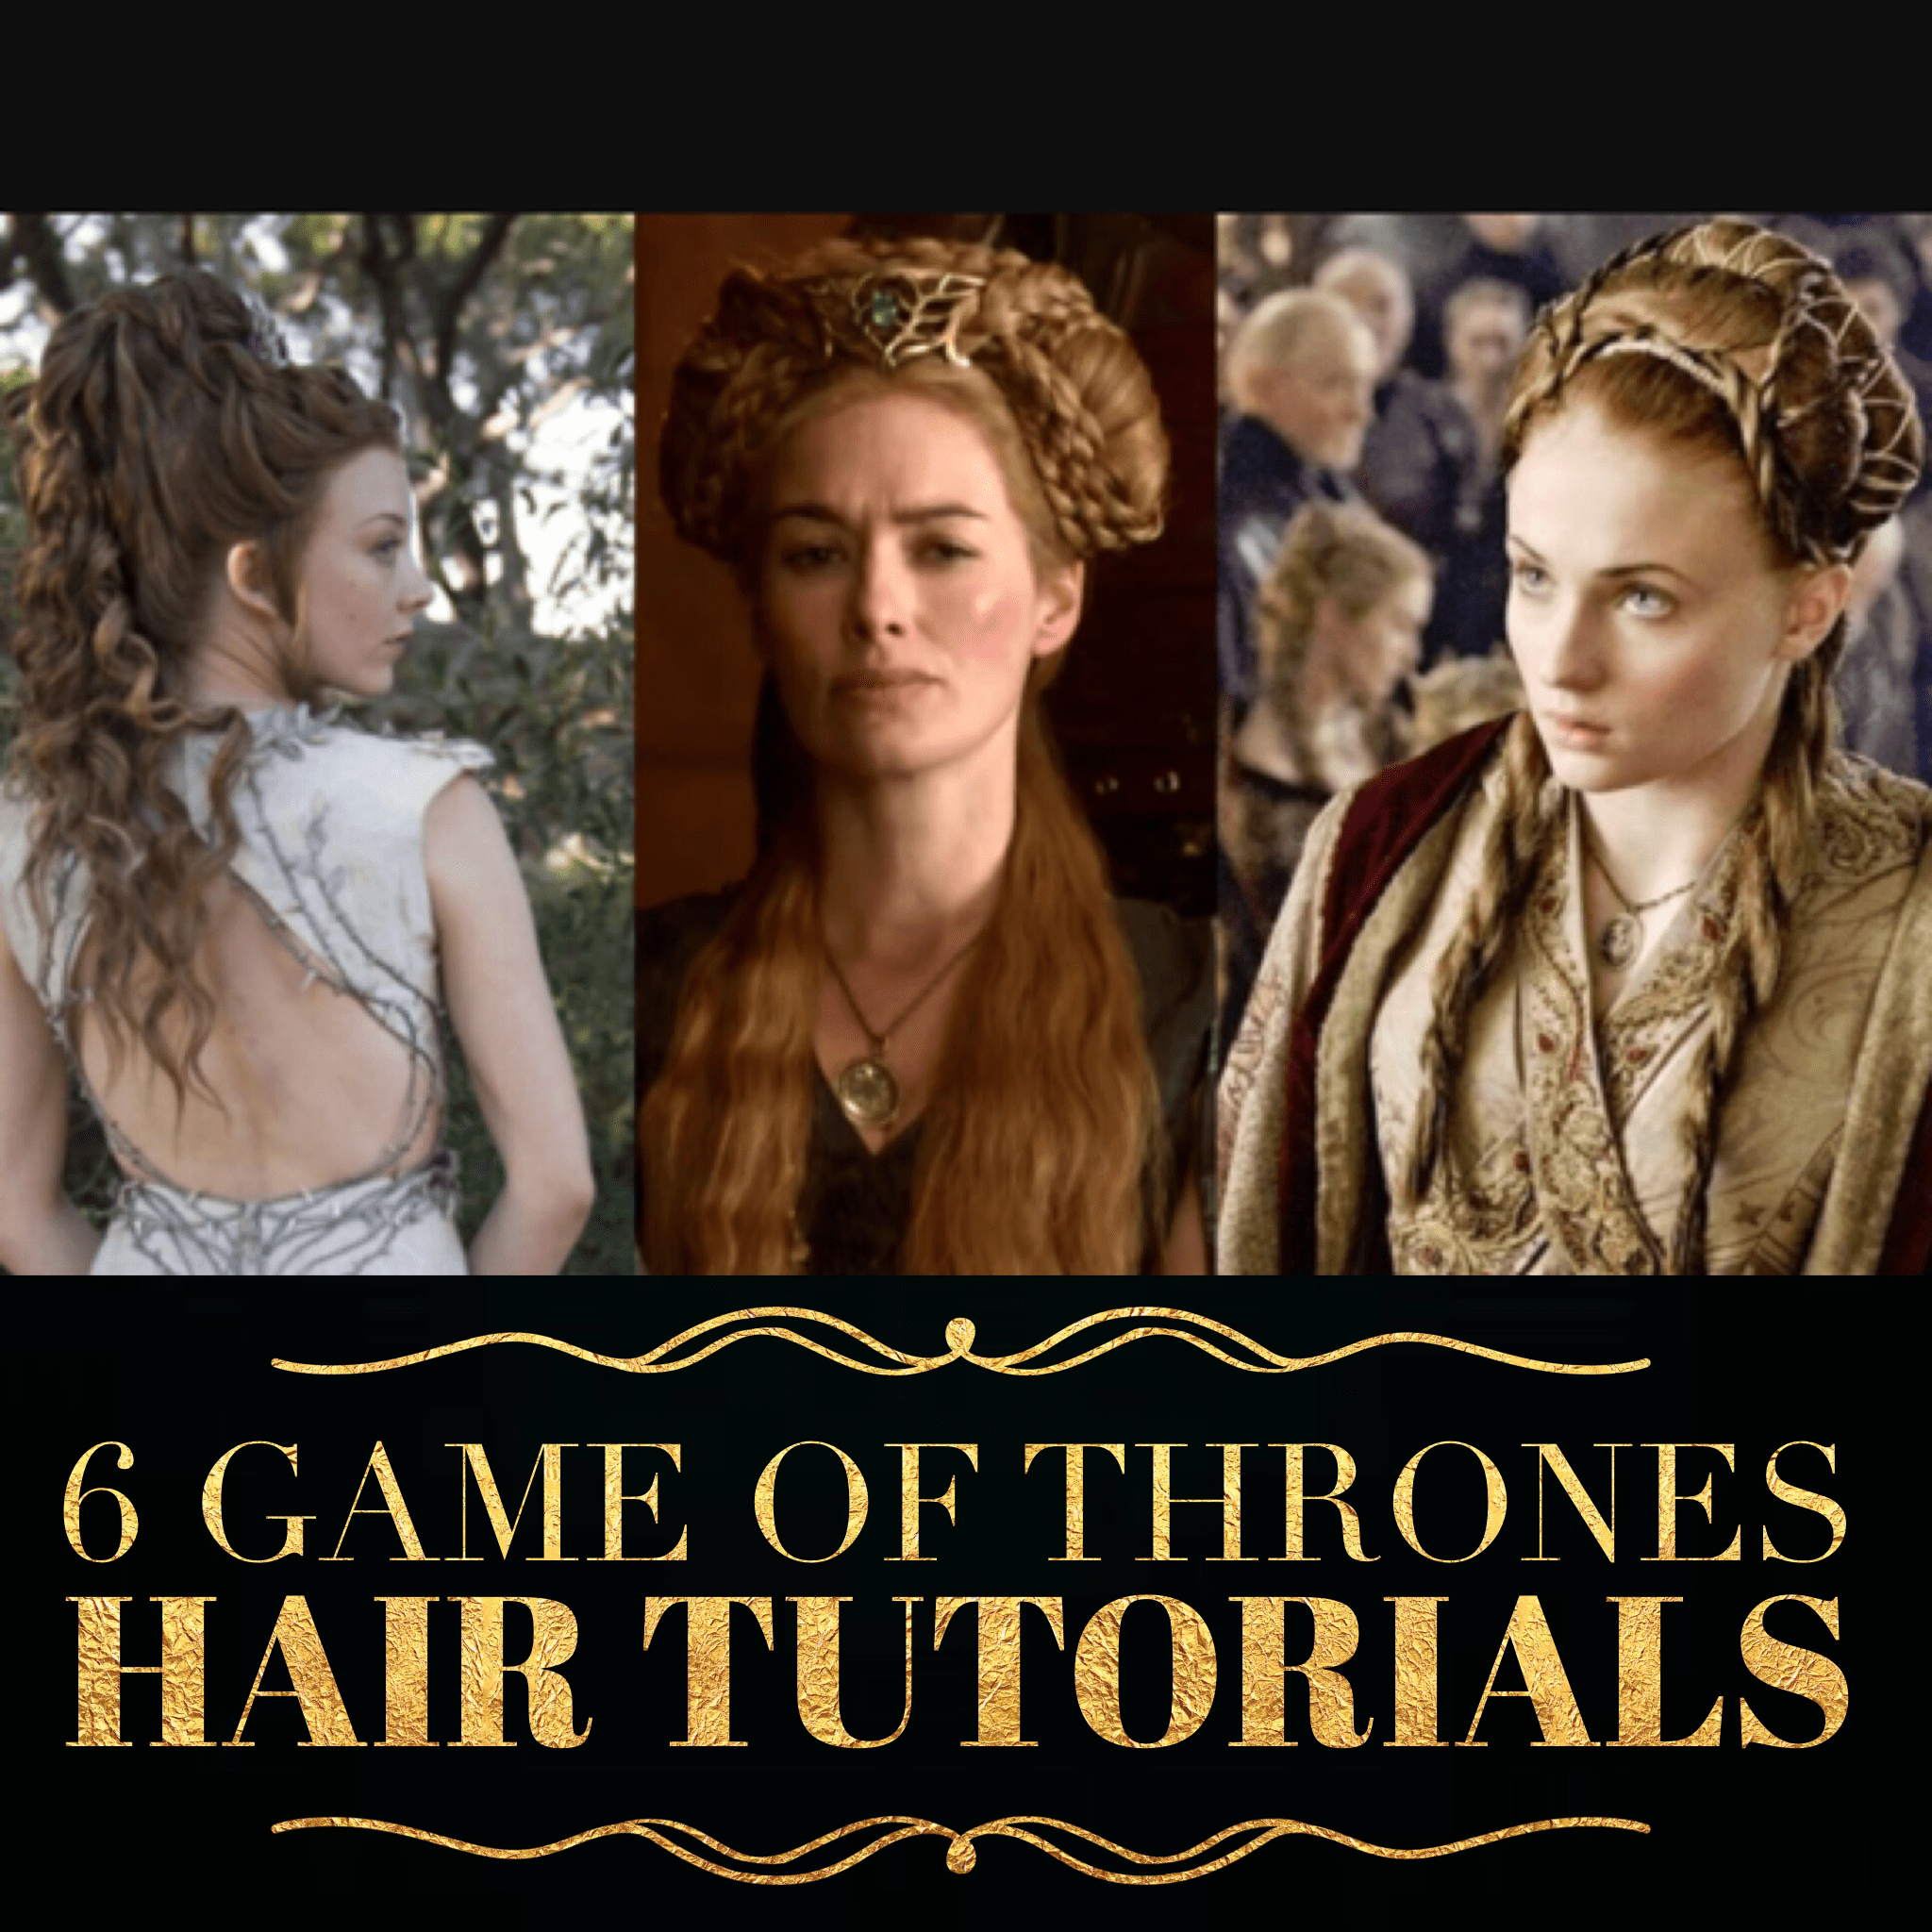 6 game of thrones hair tutorials holleewoodhair in light of the new game of thrones season premiering today i decided to post baditri Images